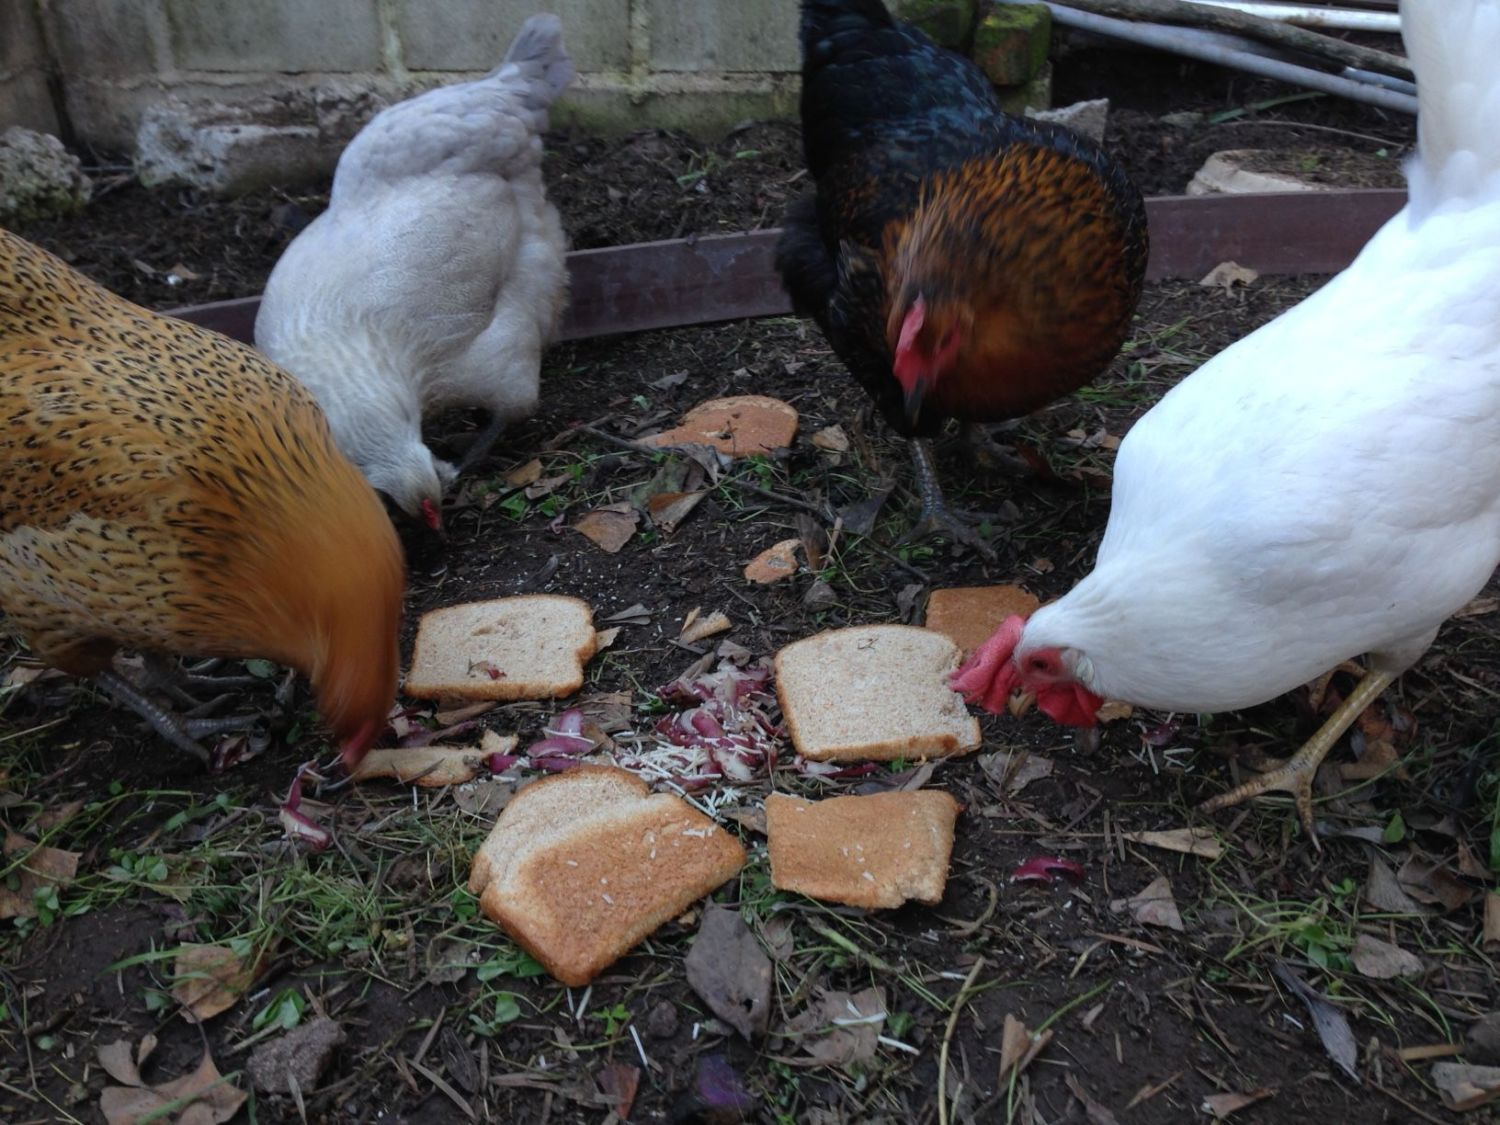 Here are Deedee and her girlfriends. There's Beatrix, an orange eater egger, Phyllis, a black star/black sexlink, and Marilyn, a white leghorn with a huge comb that covers her right eye completely. I got breeds that lay different color eggs so that I would be able to tell who laid what eggs. That has been fun!